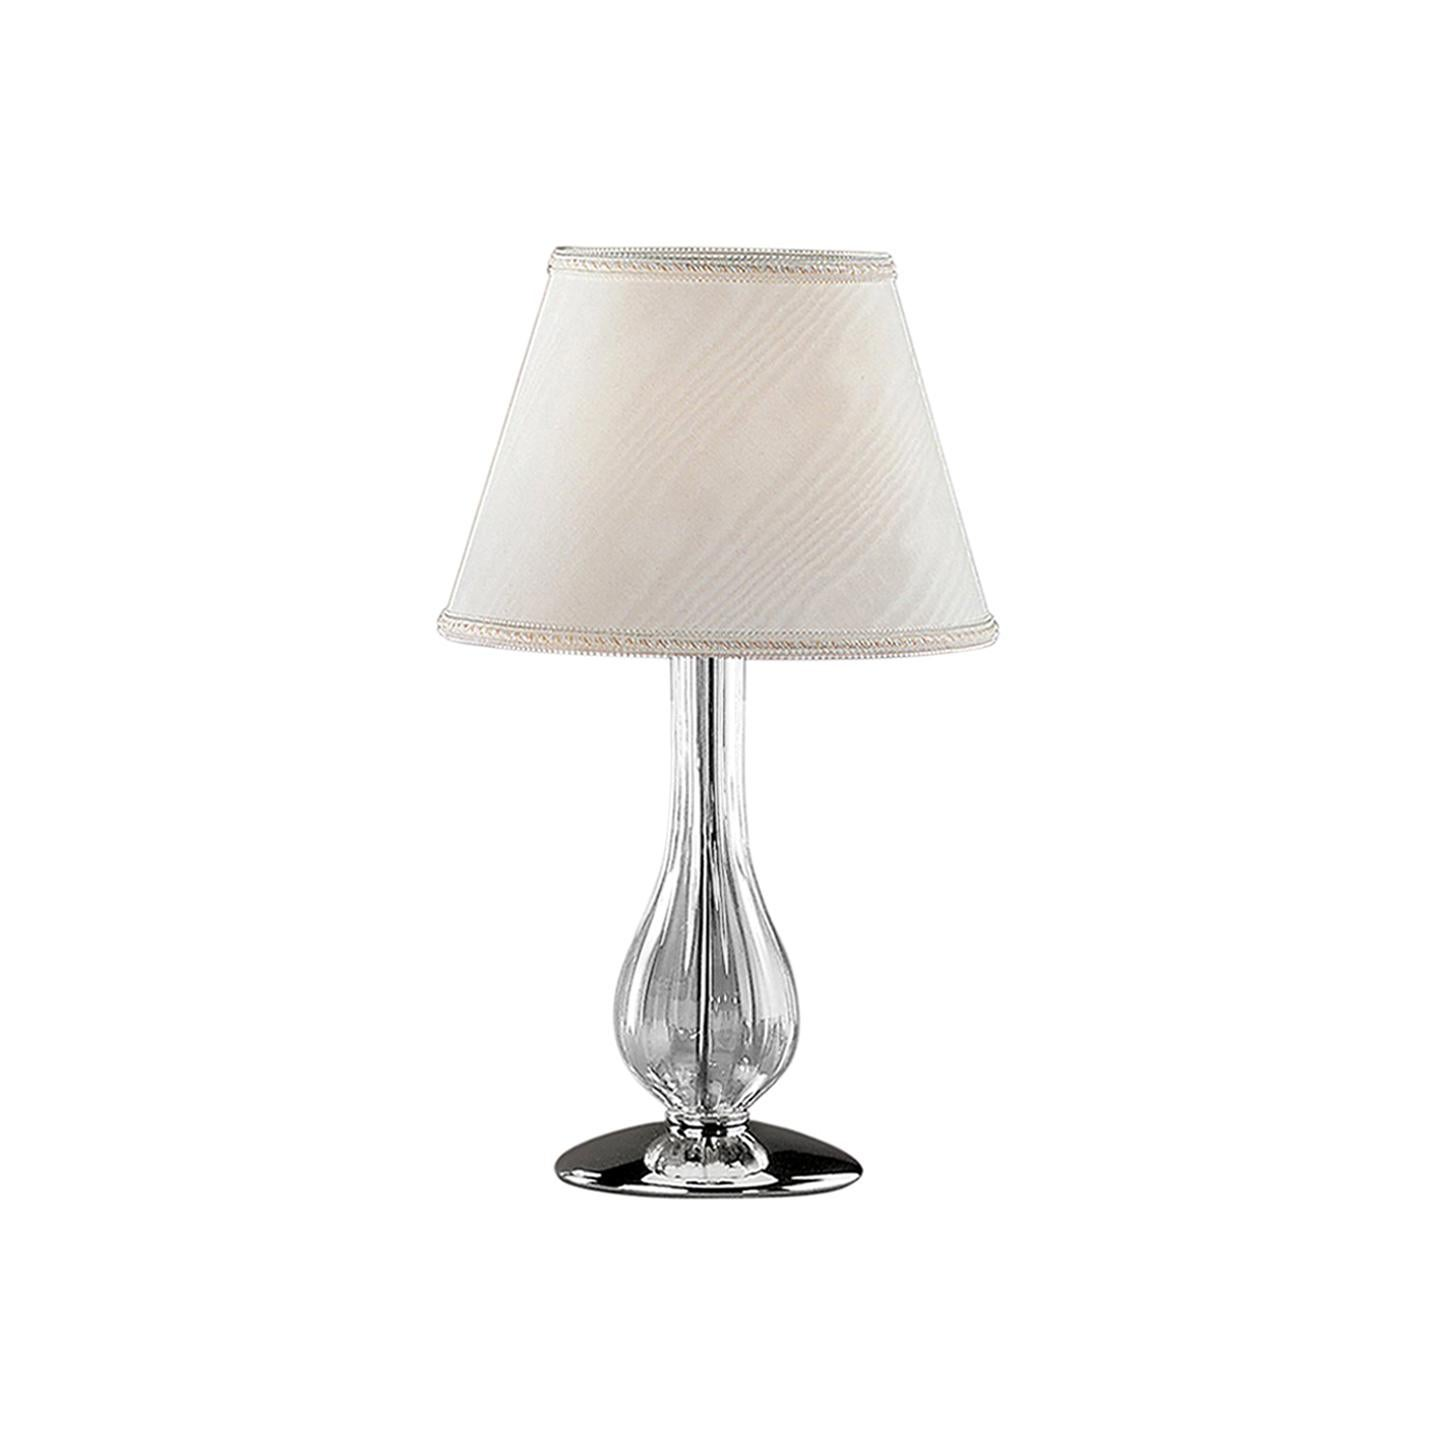 Leucos Cheope T 42 Table Light in Transparent & Chrome by Design Lab